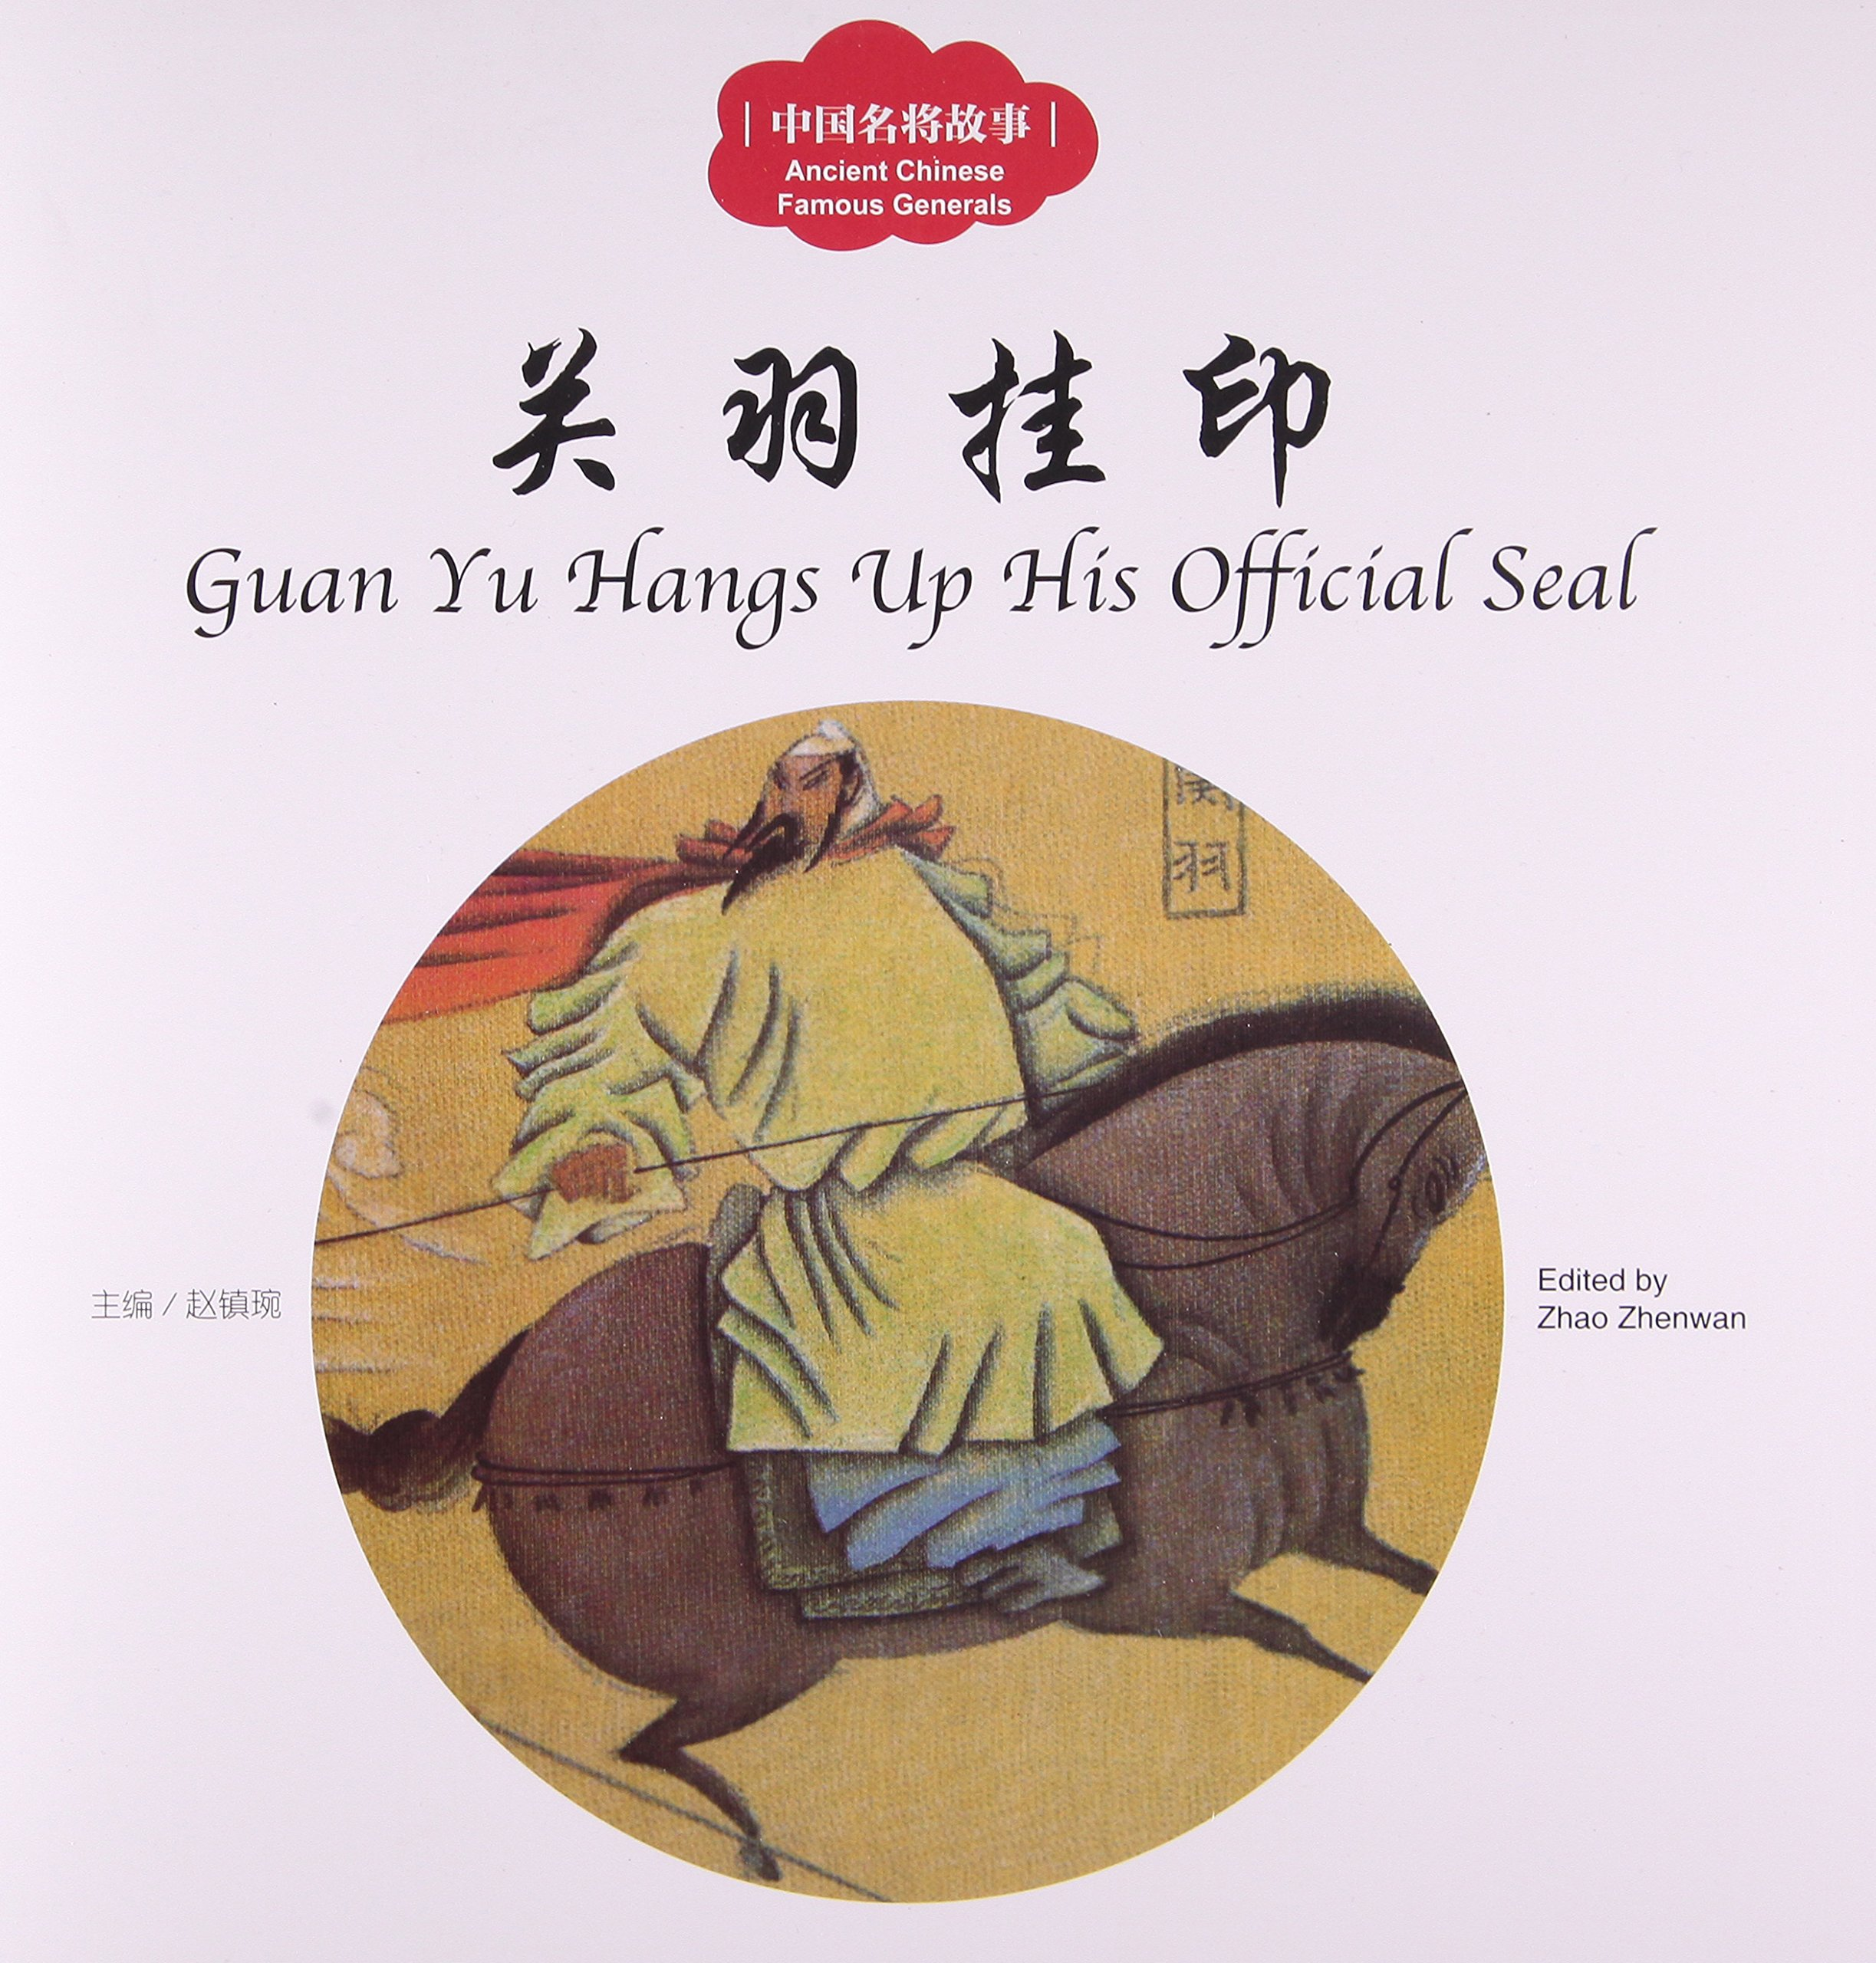 Guan Yu Hangs Up His Official Seal - First Books for Early Learning Series